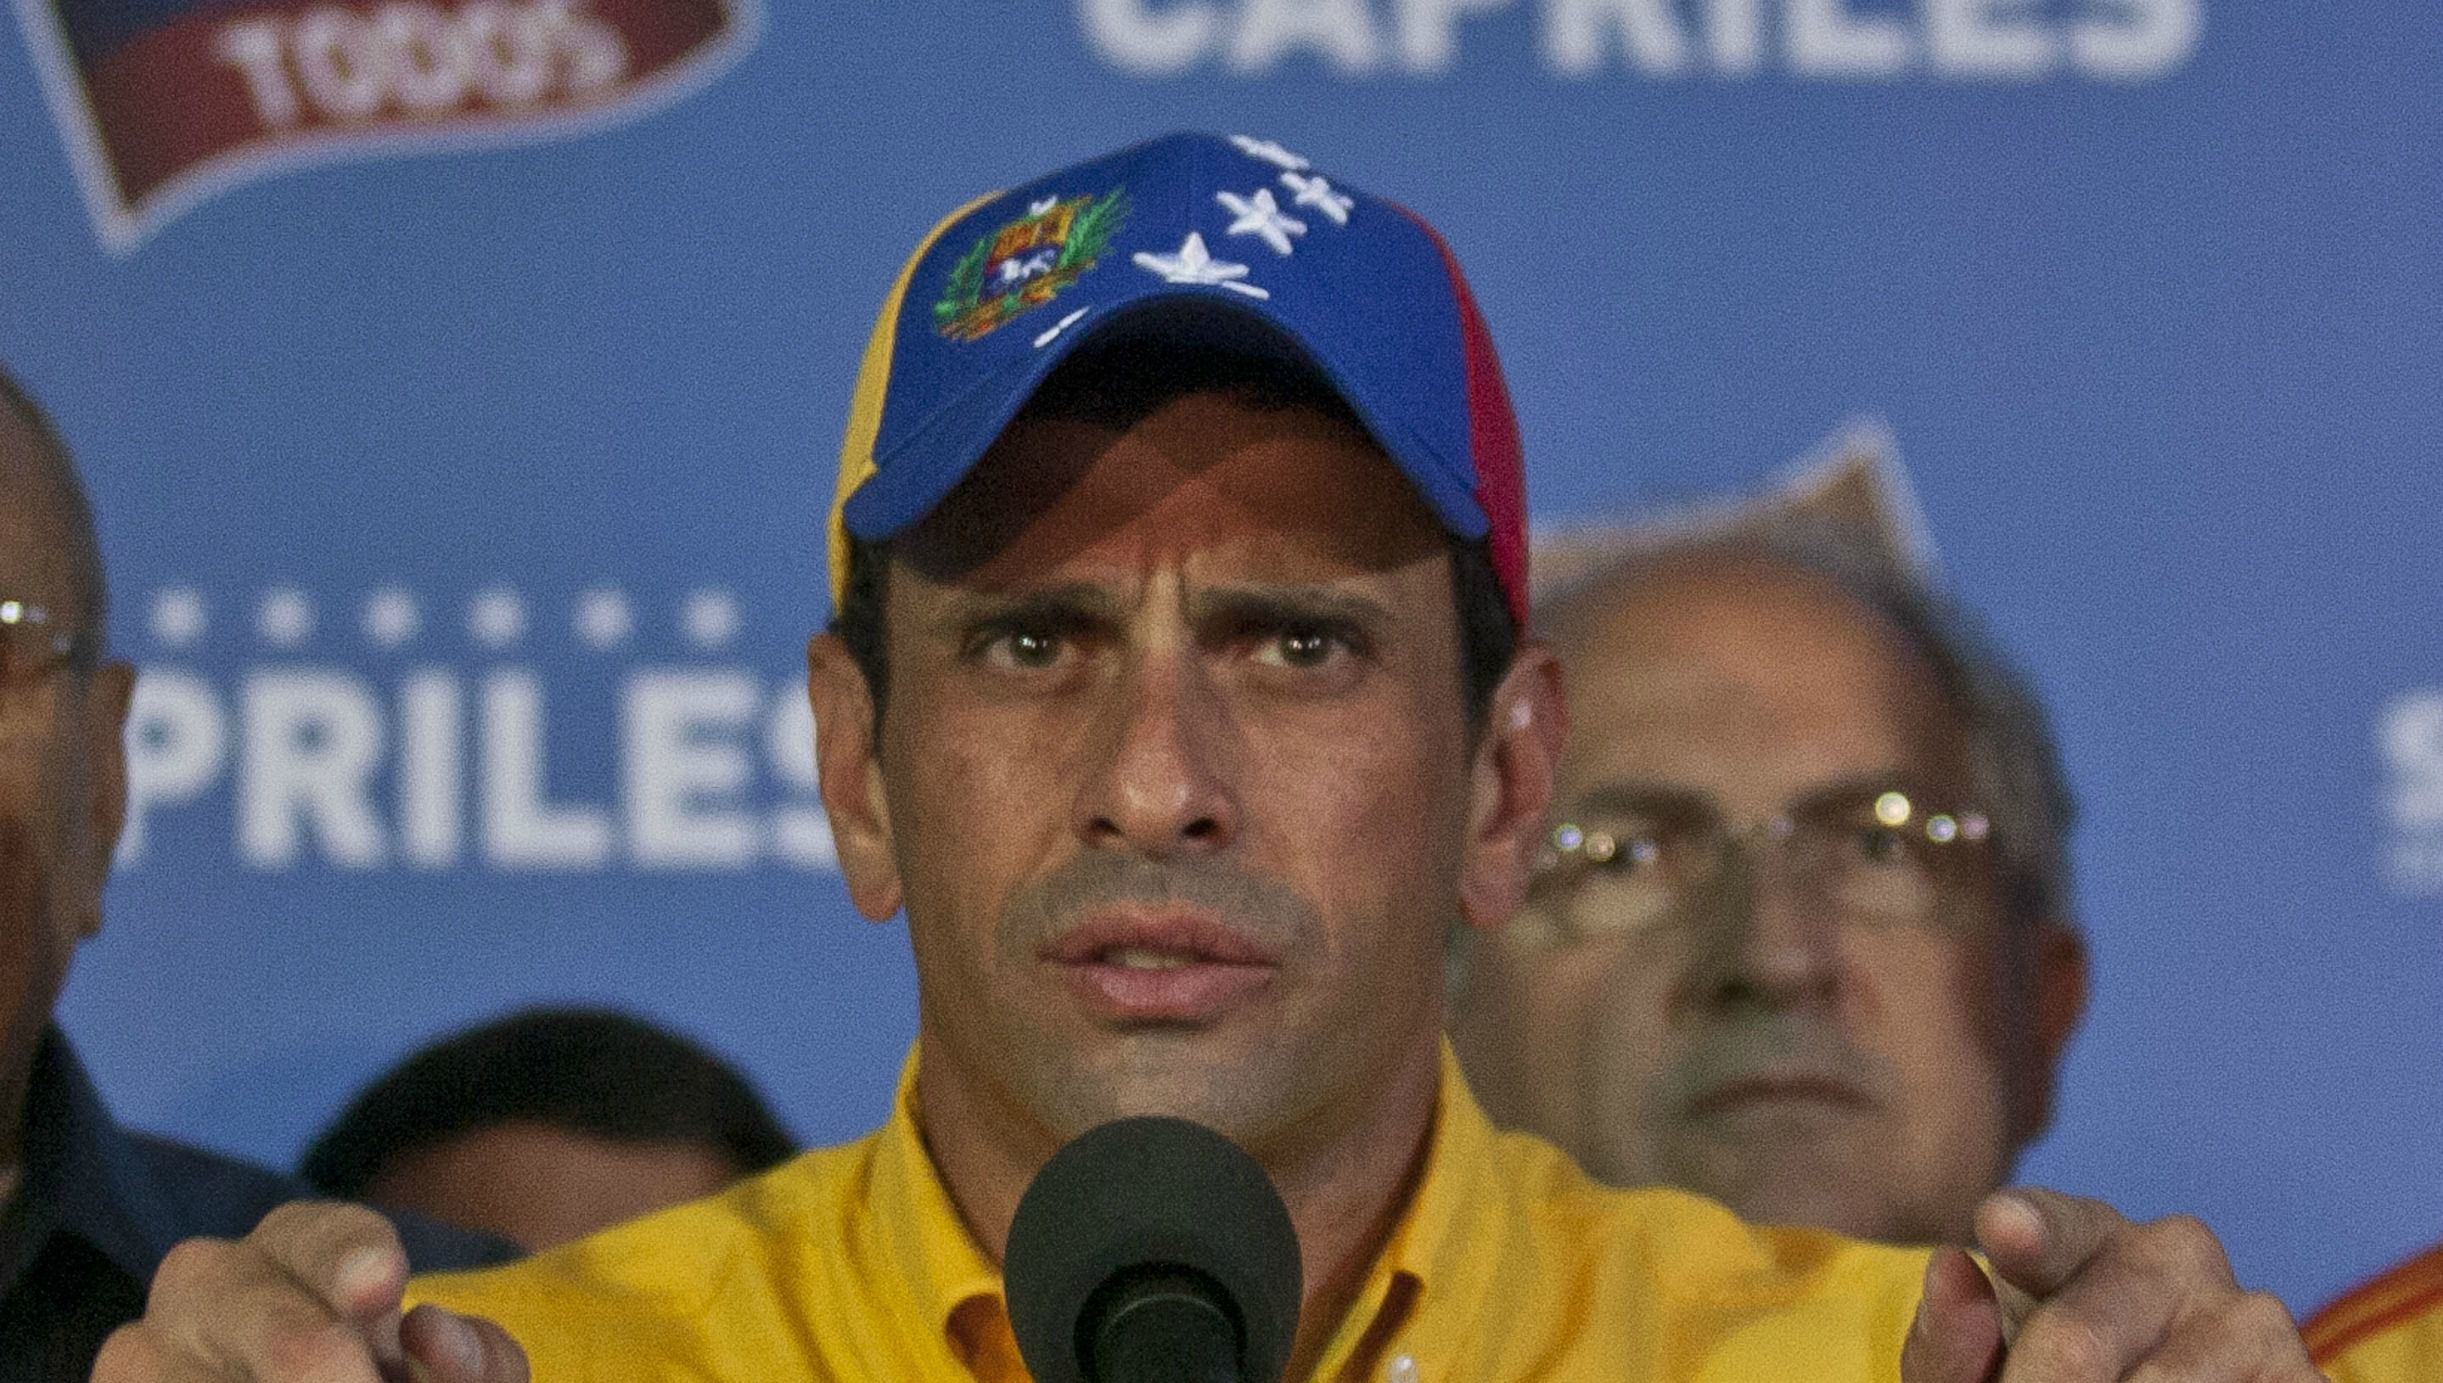 Tight Loss: Henrique Capriles demanded a recount after he lost in an unexpectedly tight race to succeed Venezuelan strongman Hugo Chavez.